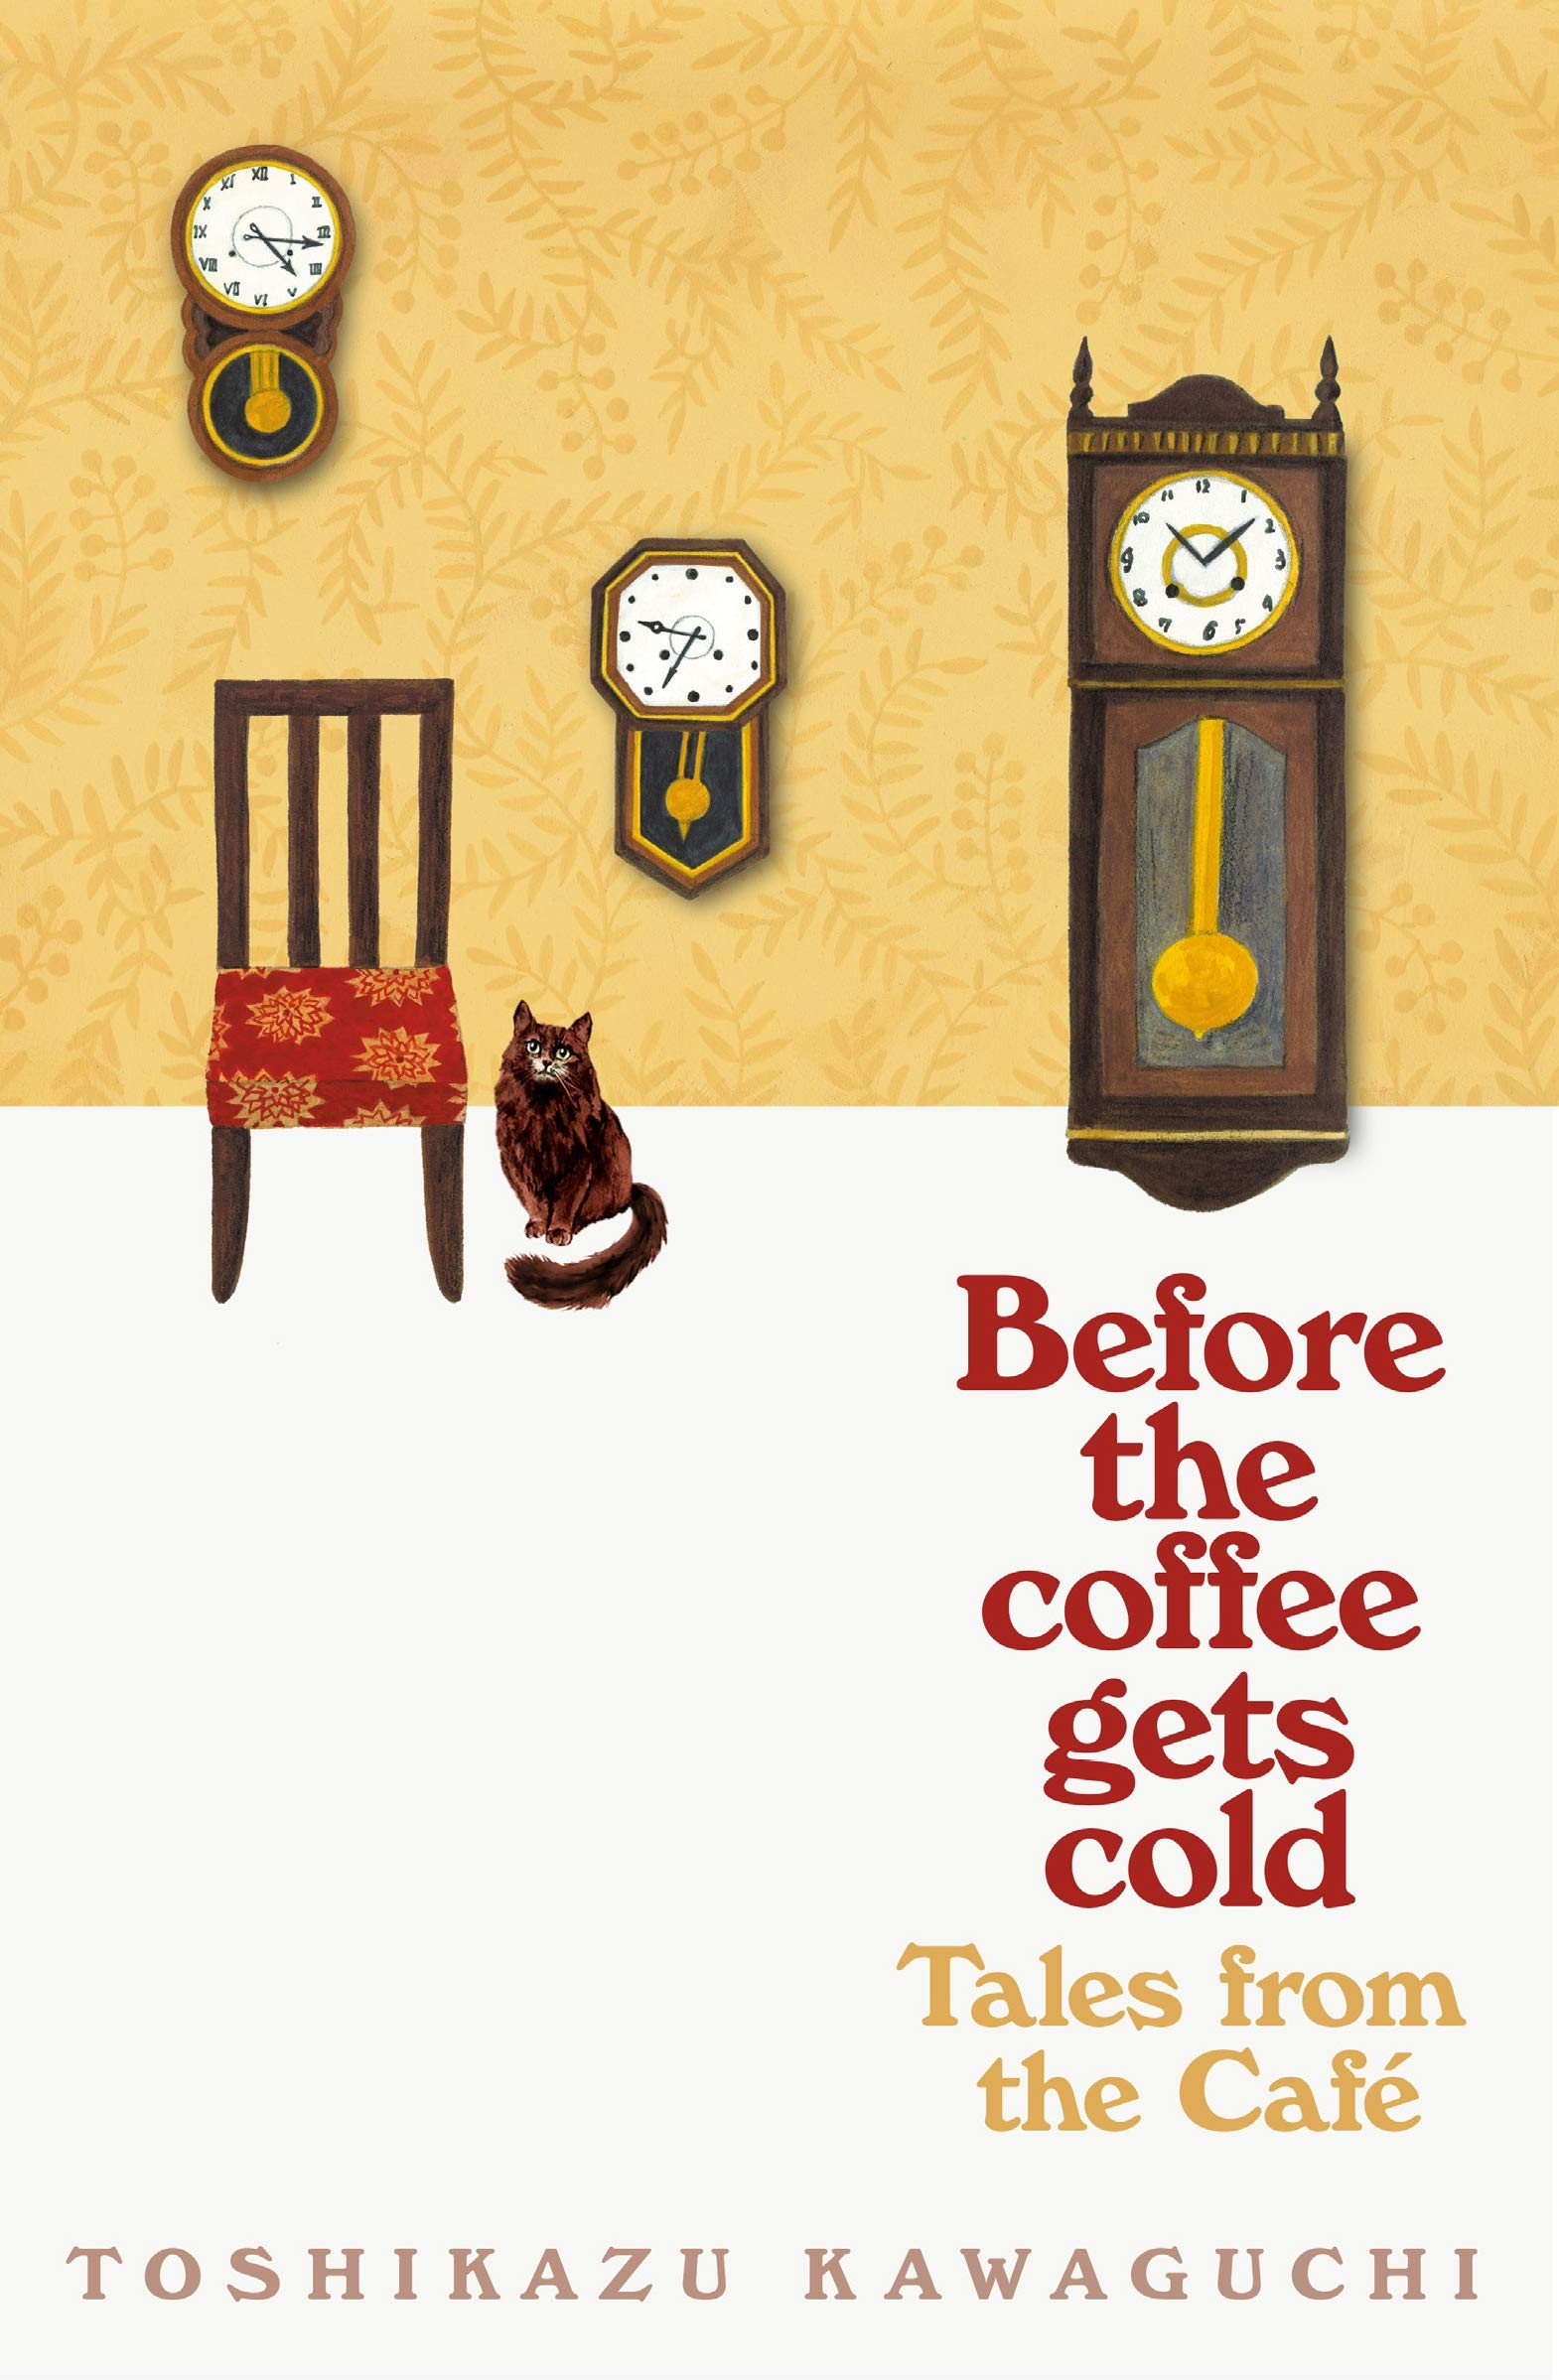 Tales from the Cafe: Before the Coffee Gets Cold: Amazon.co.uk: Kawaguchi,  Toshikazu, Trousselot, Geoffrey: 9781529050868: Books